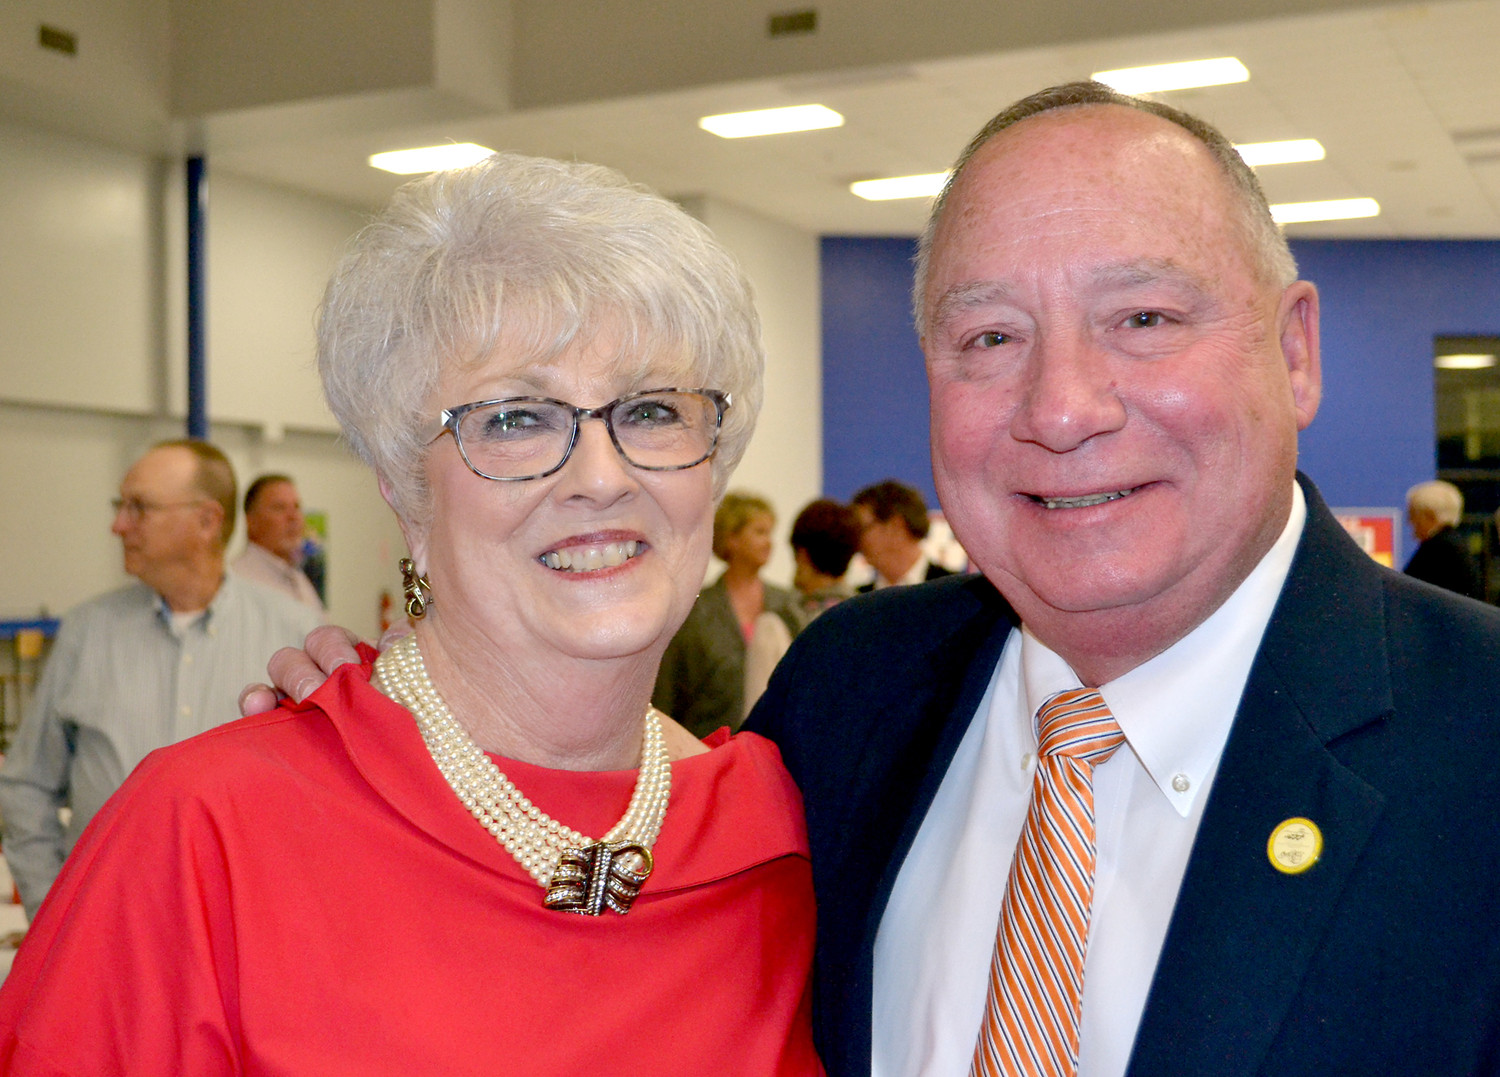 DALE DIXON AND MIKE SMITH were recipients of the Republican Woman of the Year and Republican Man of the Year at Saturday's Reagan Day Dinner.